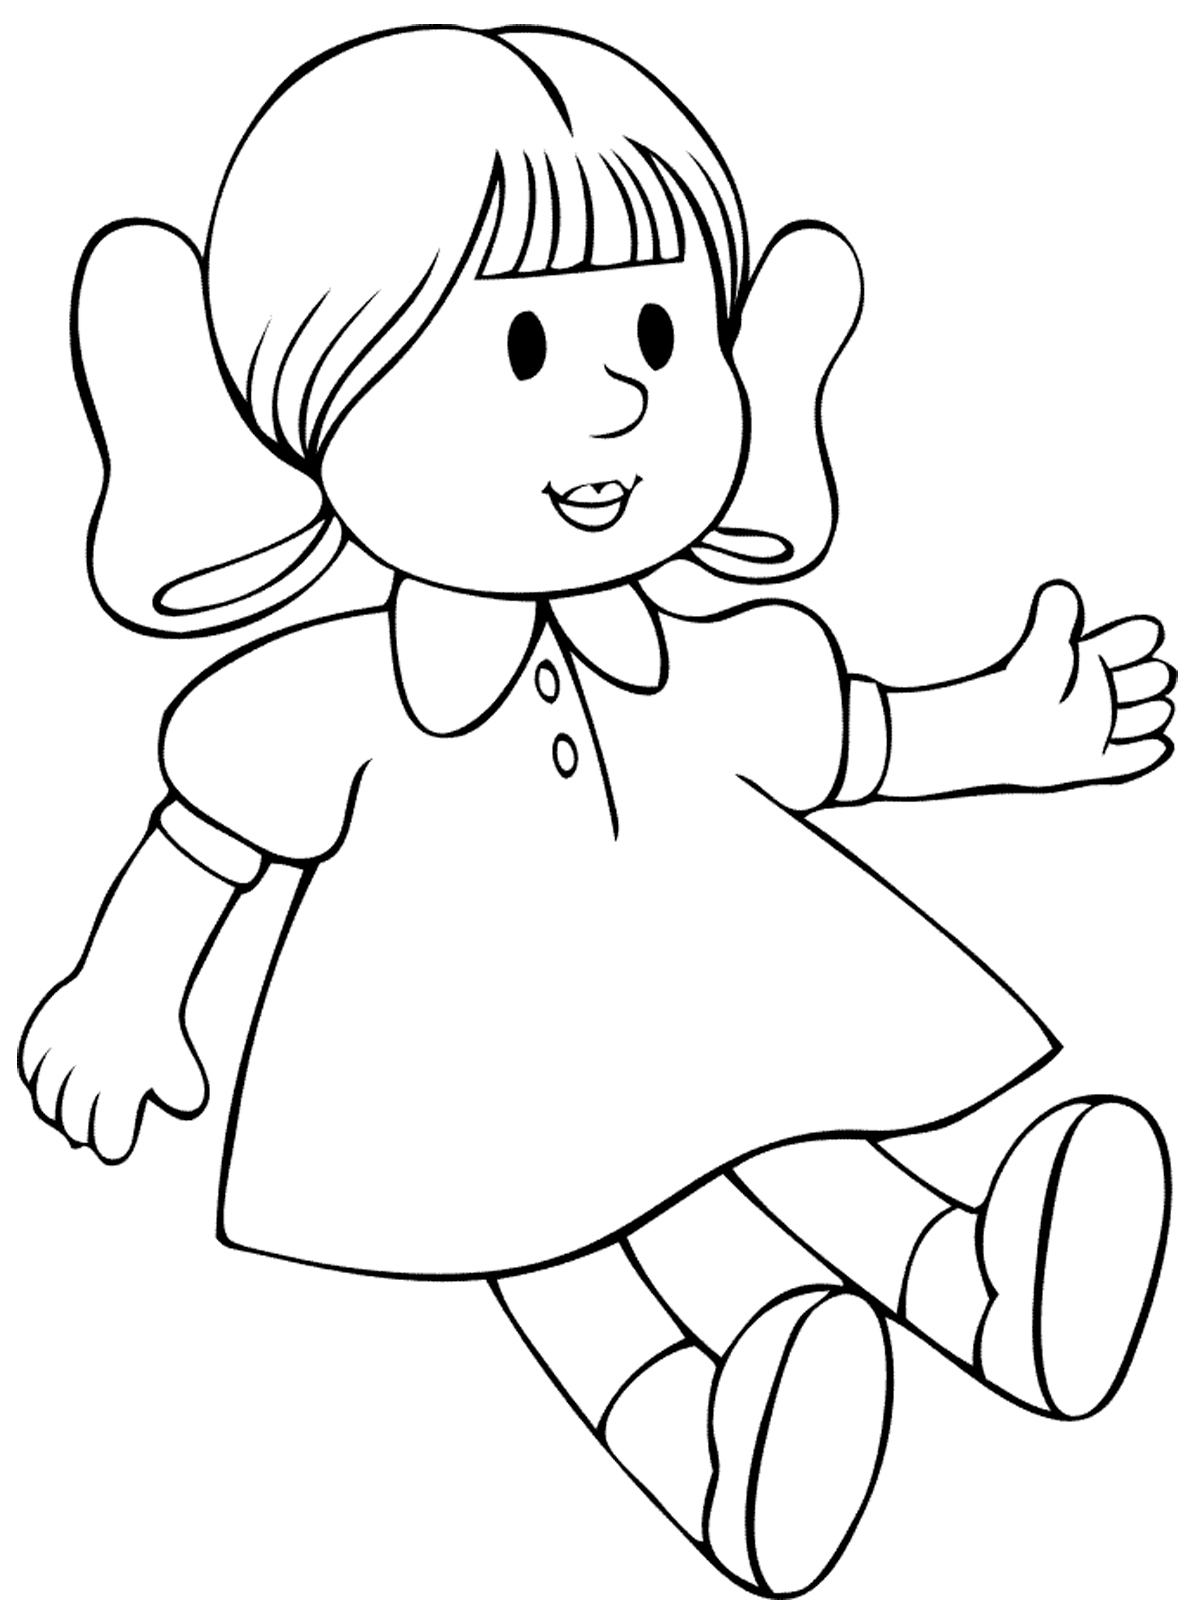 doll coloring sheets baby doll coloring page at getdrawings free download sheets doll coloring